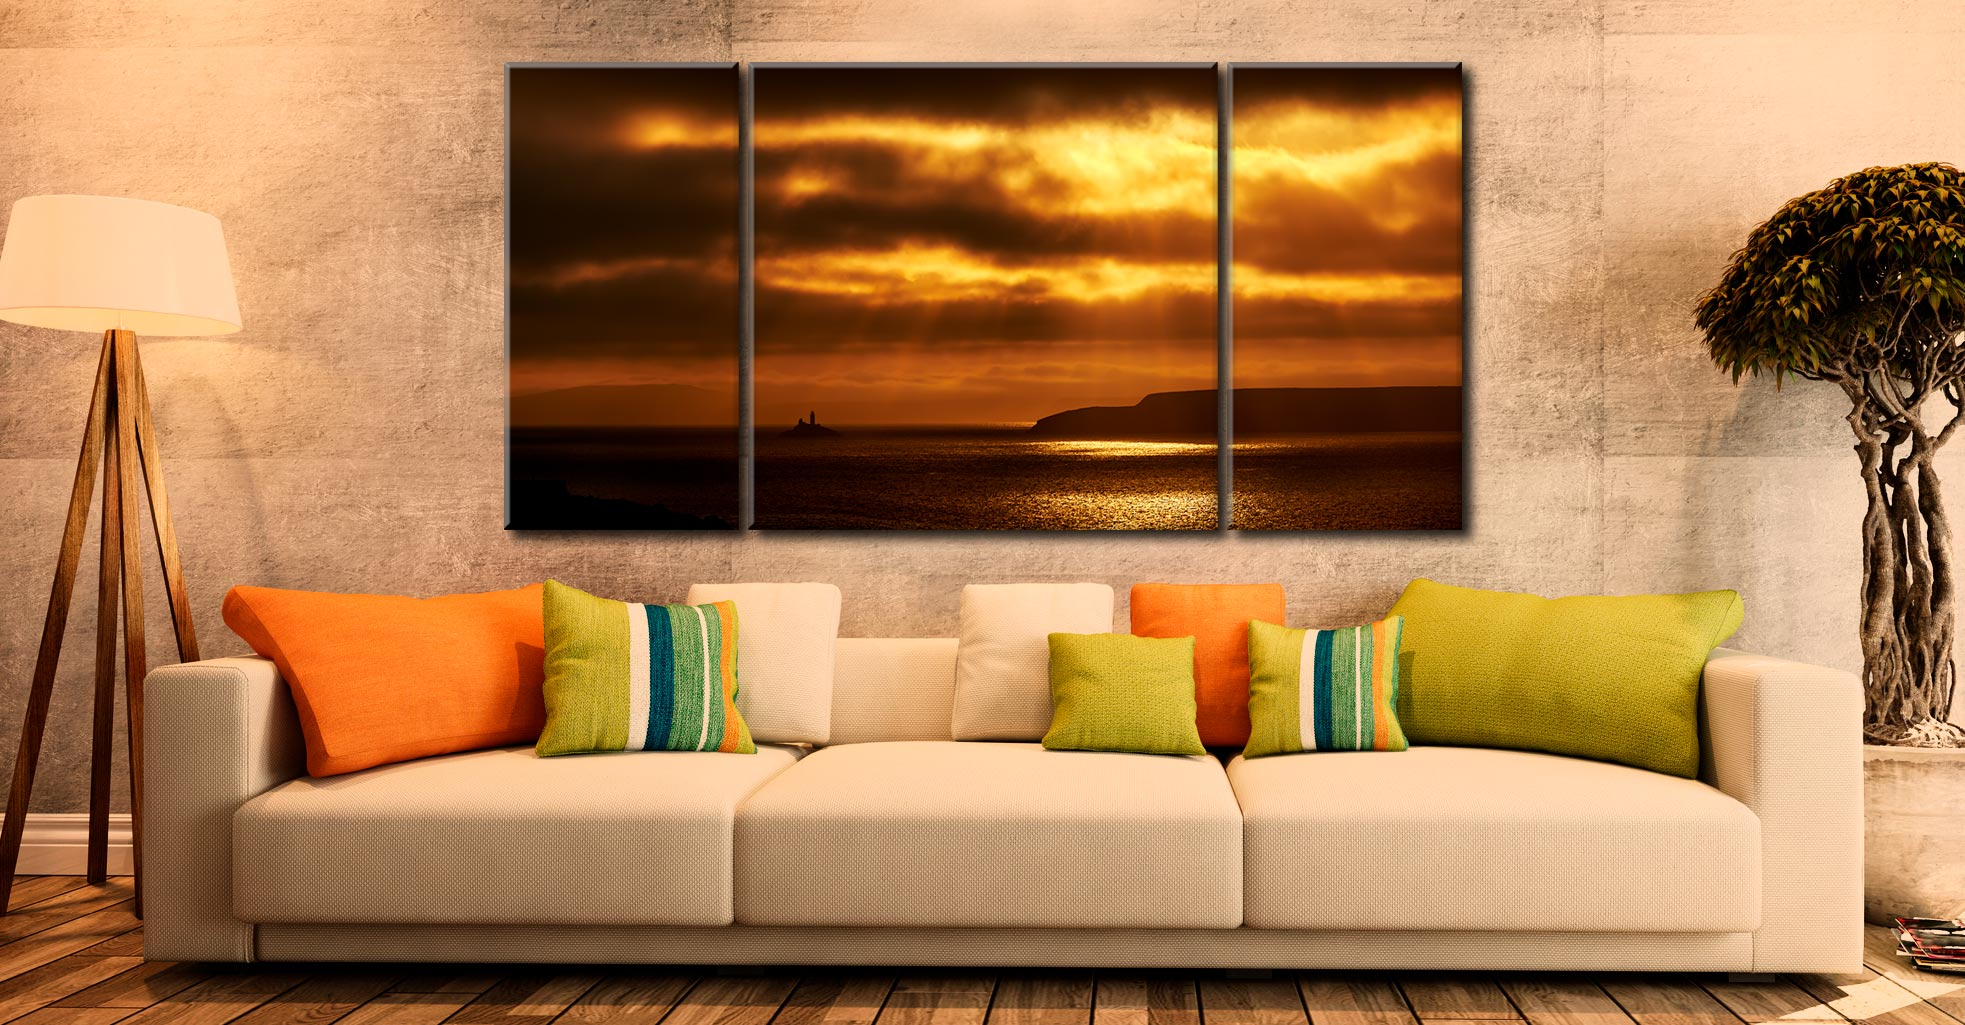 Golden Lighthouse St Ives Bay - 3 Panel Wide Centre Canvas on wall